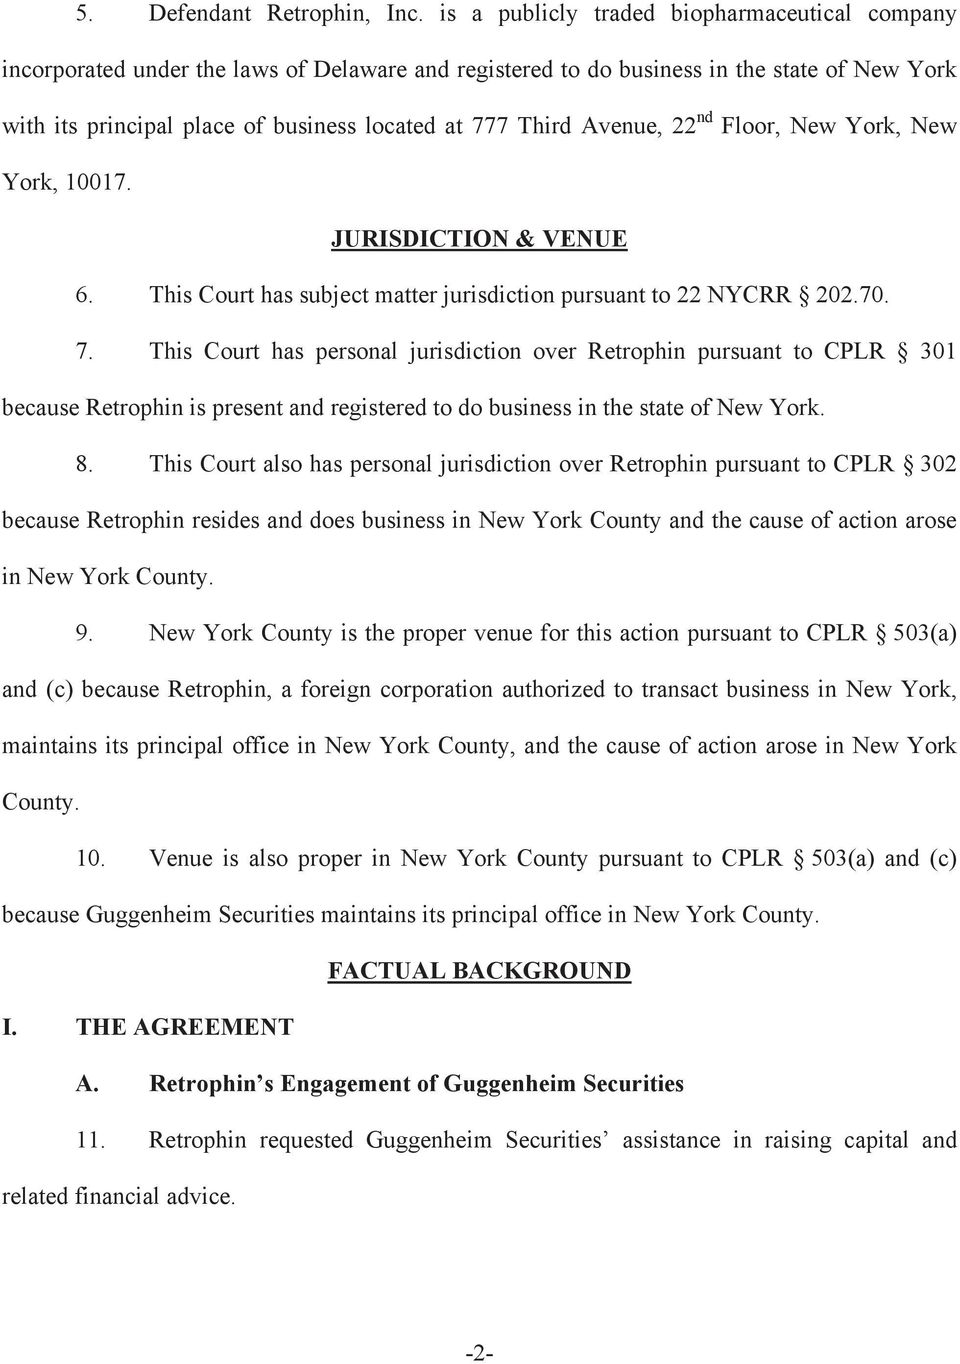 Avenue, 22 nd Floor, New York, New York, 10017. JURISDICTION & VENUE 6. This Court has subject matter jurisdiction pursuant to 22 NYCRR 202.70. 7.